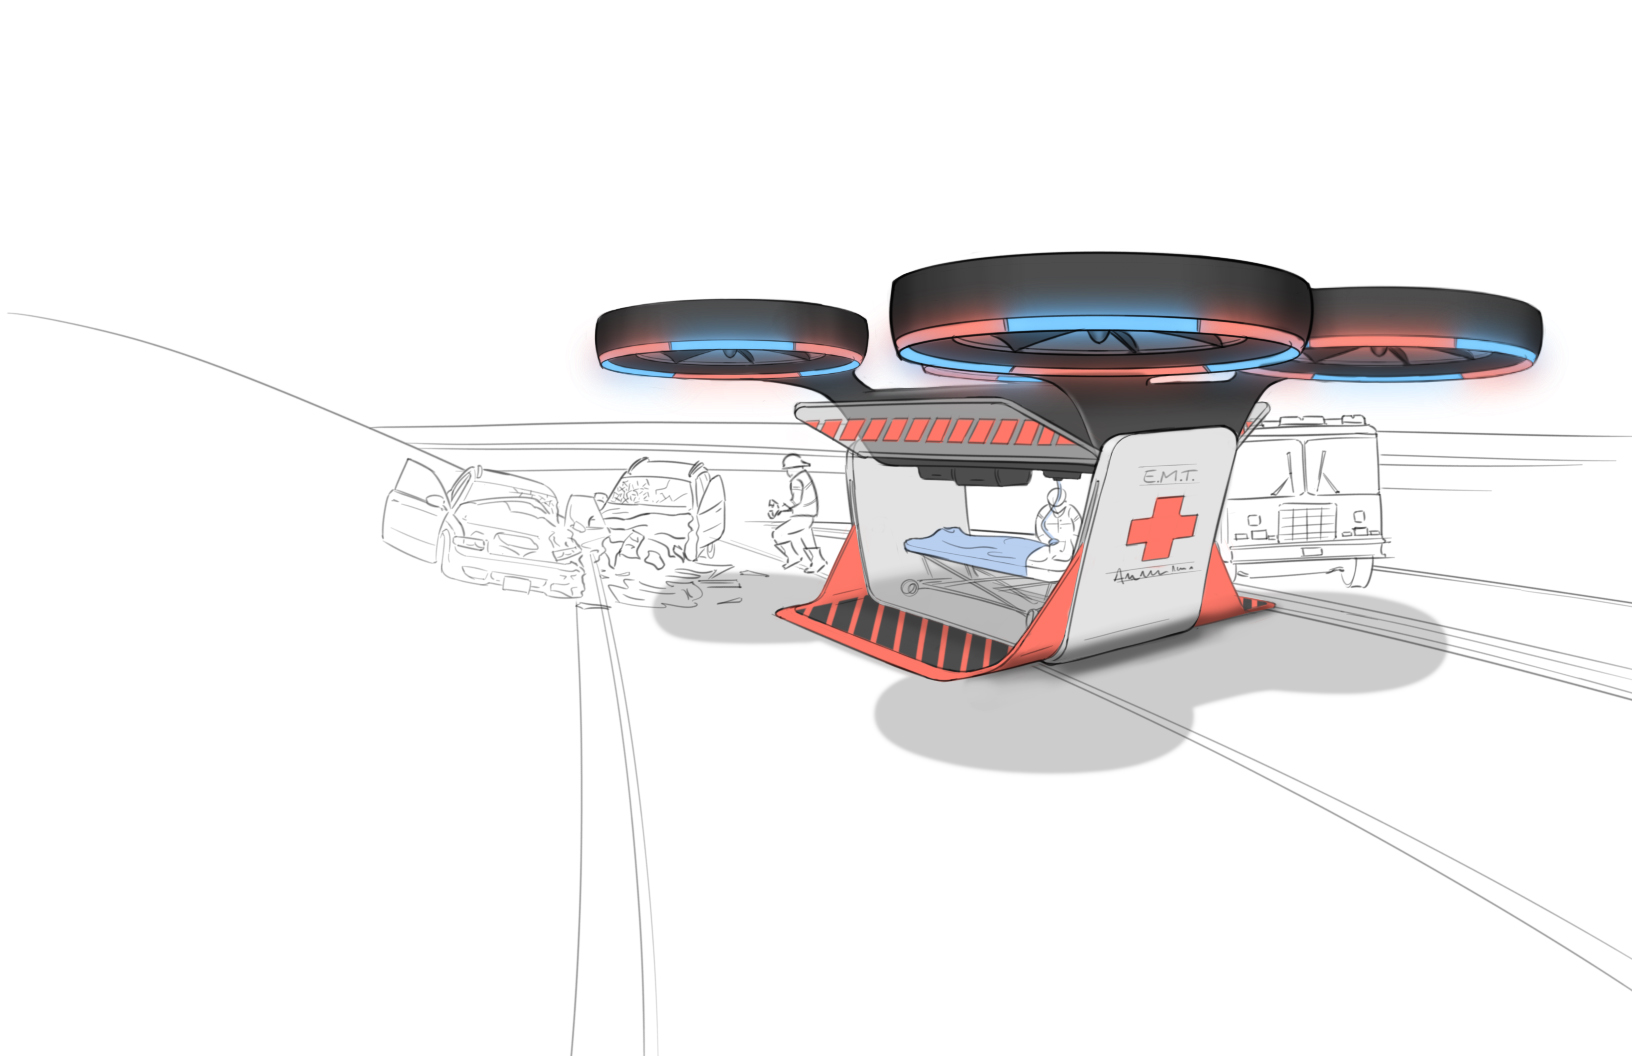 drawing of a flying ambulance drone concept